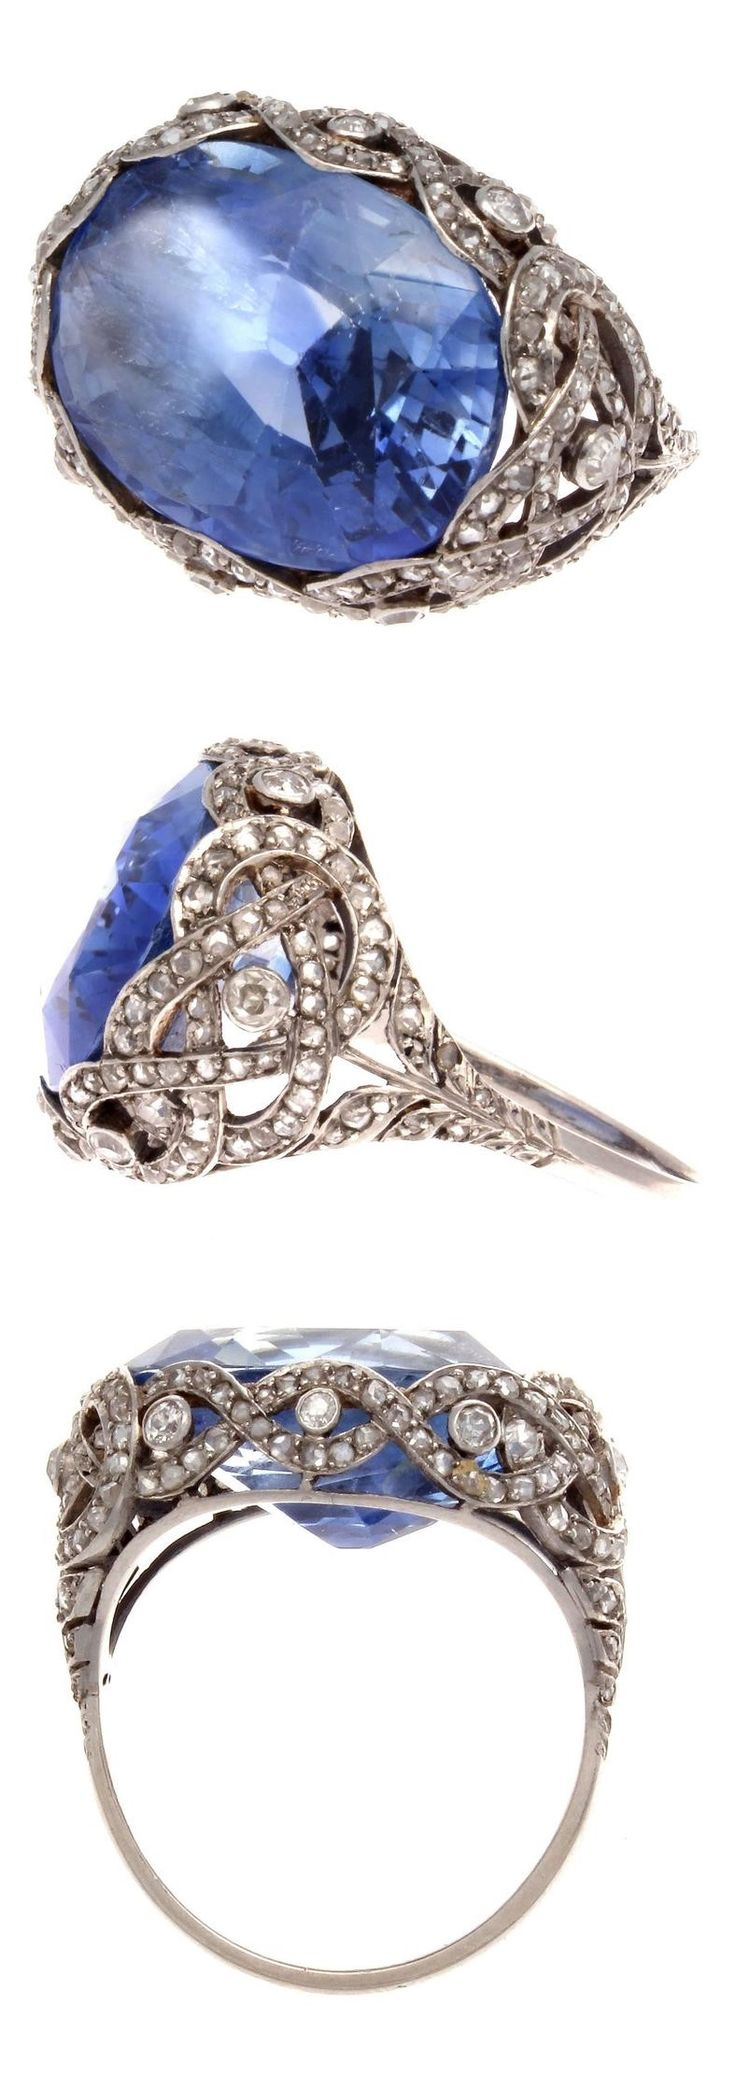 Art crafted engagement rings - An Art Deco Platinum Sapphire And Diamond Ring Usa 1930s Featuring A